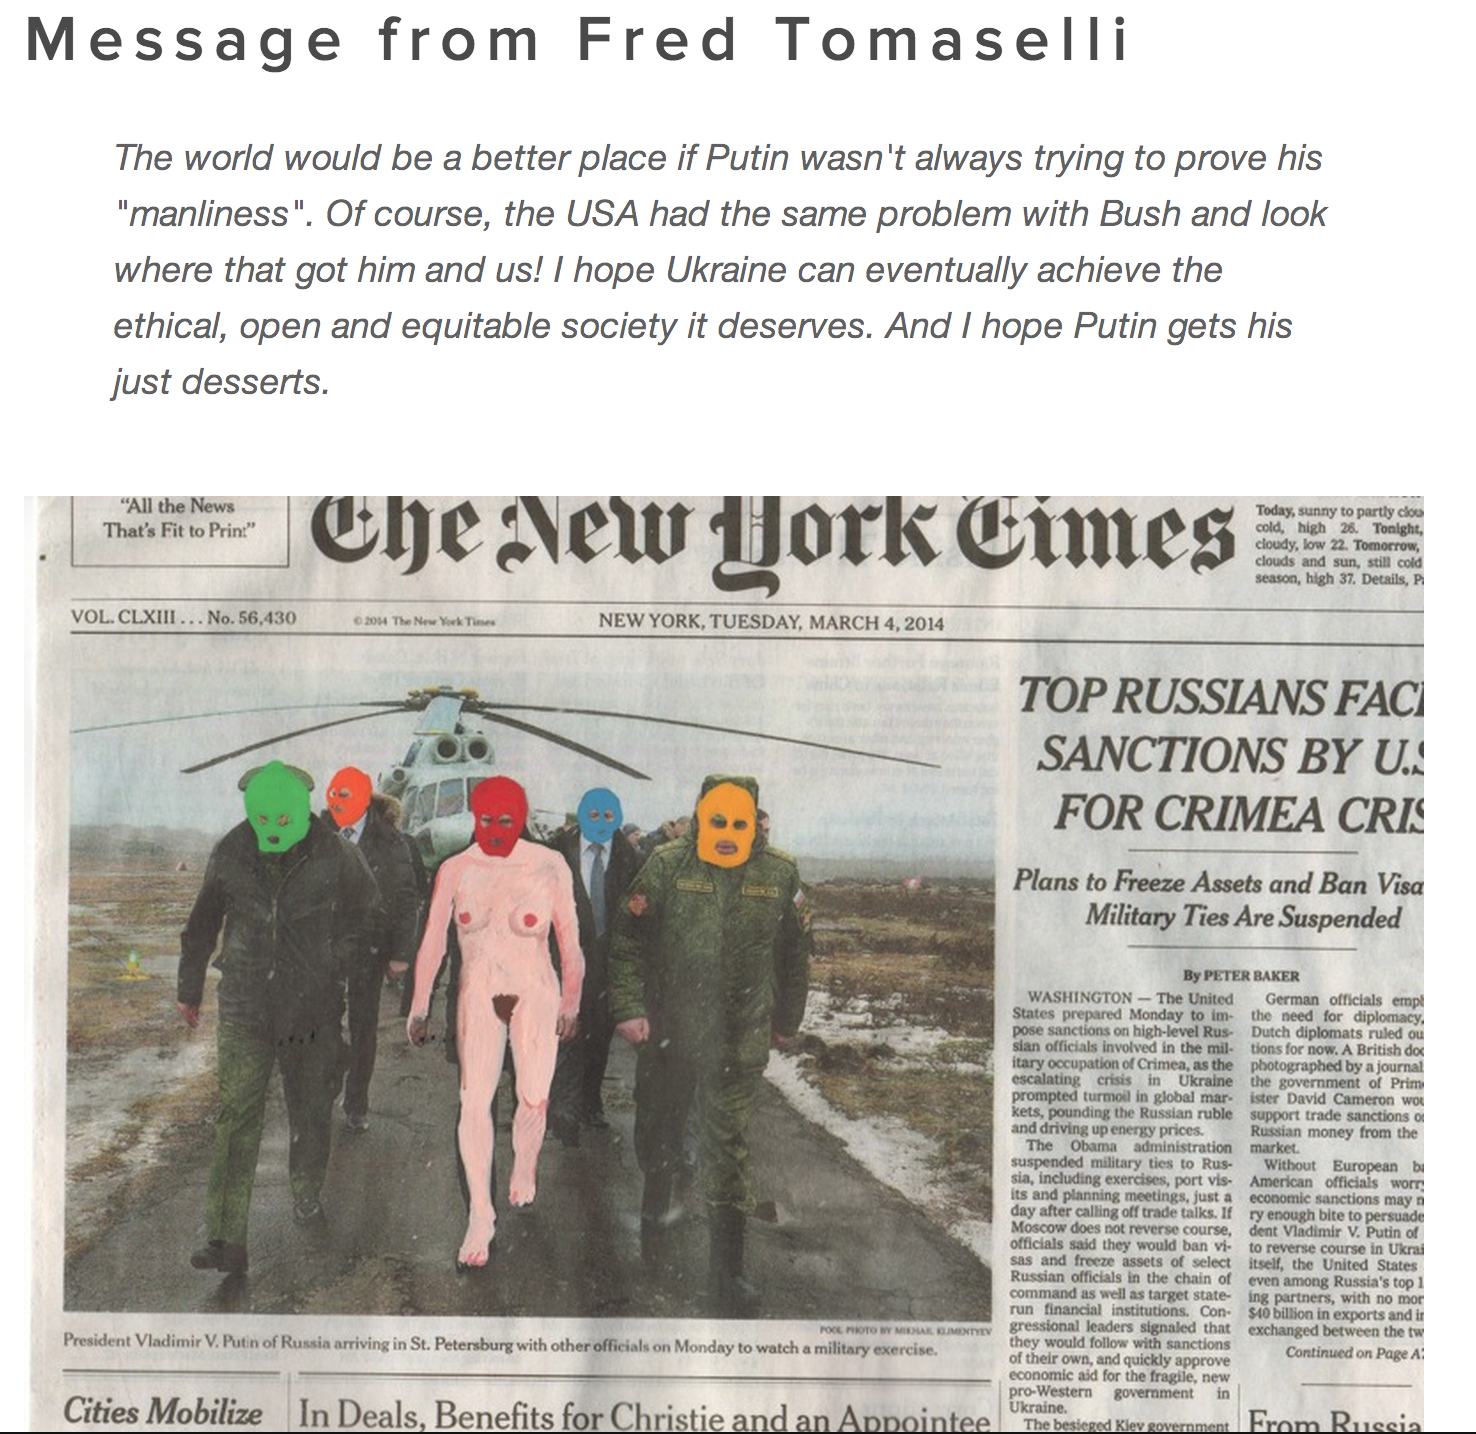 Courtesy of Fred Tomaselli via  artistssupportukraine